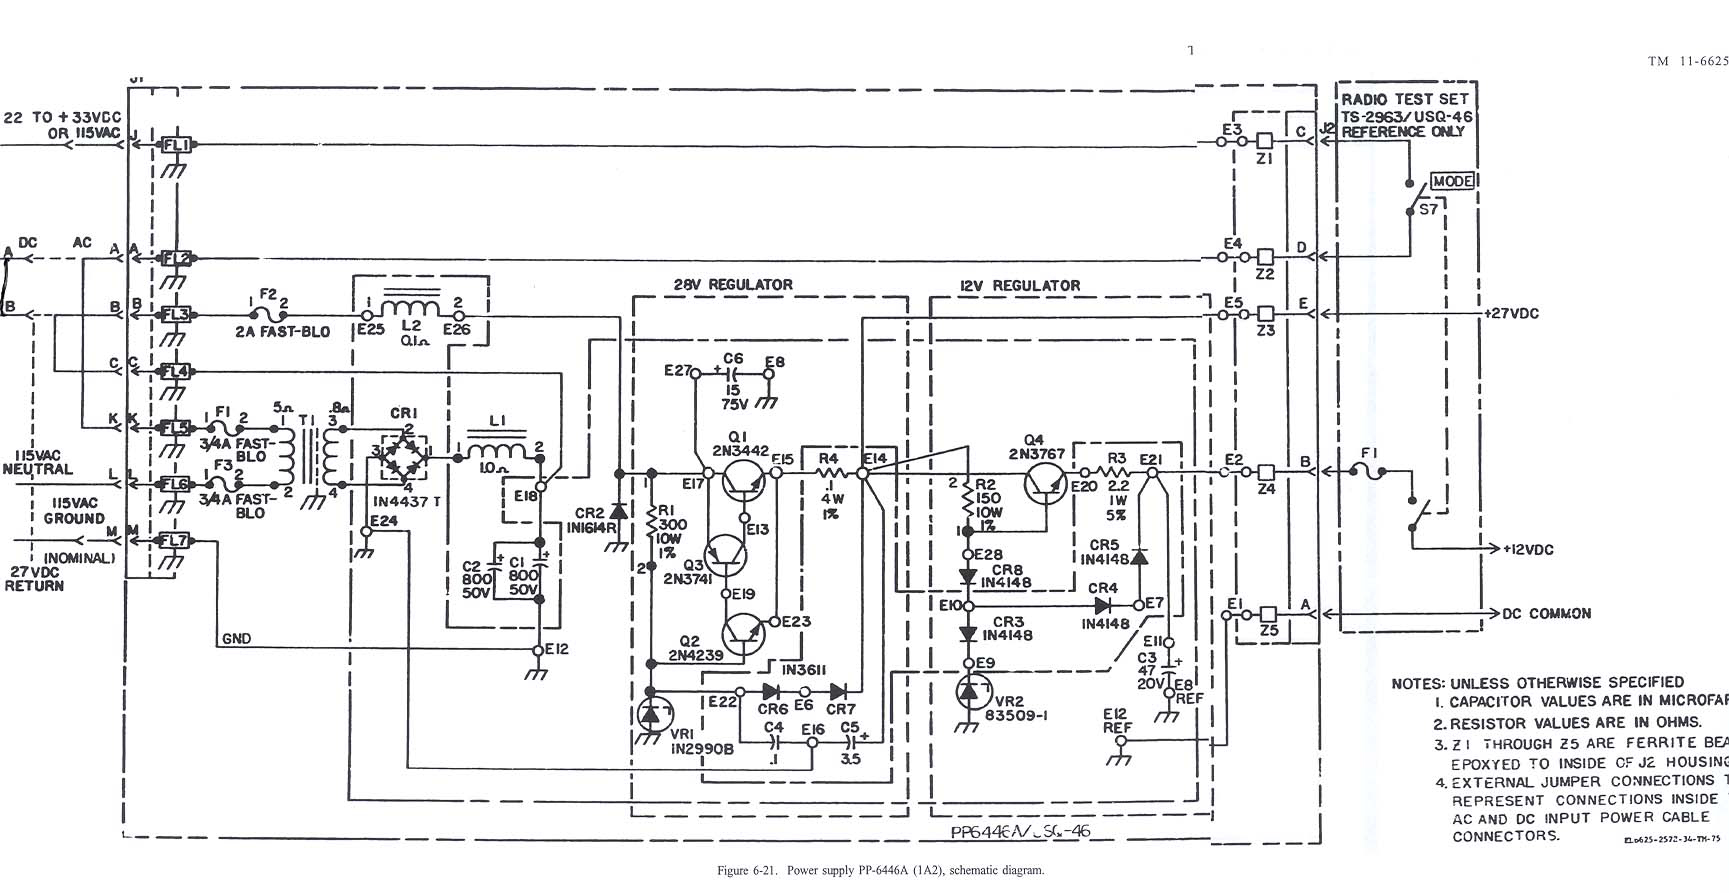 115 Vac Plug Schematic Example Electrical Wiring Diagram Usq Radio Frequency Monitor Sets 20 Amp